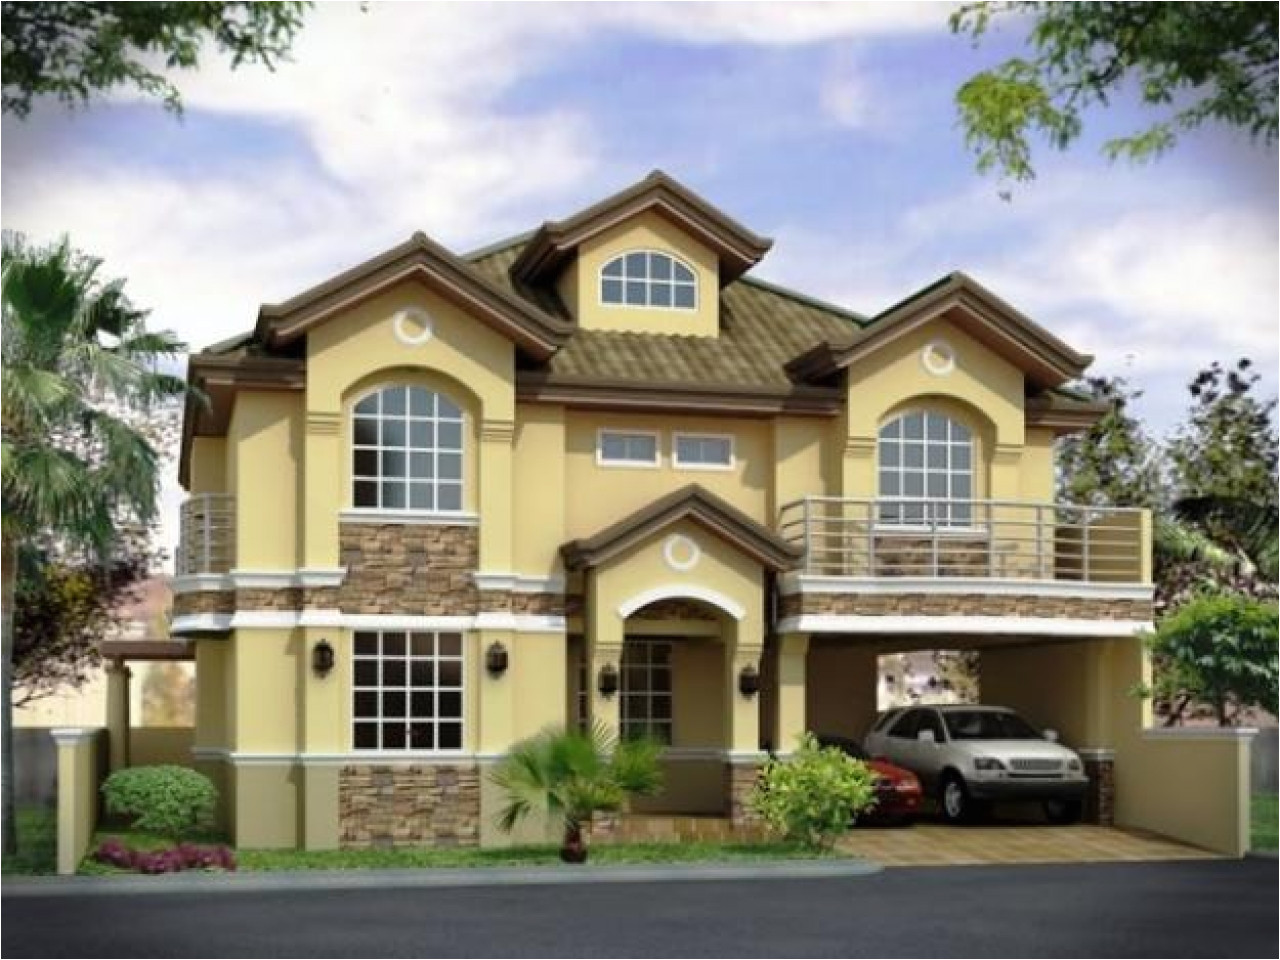 architectural home designs photo gallery